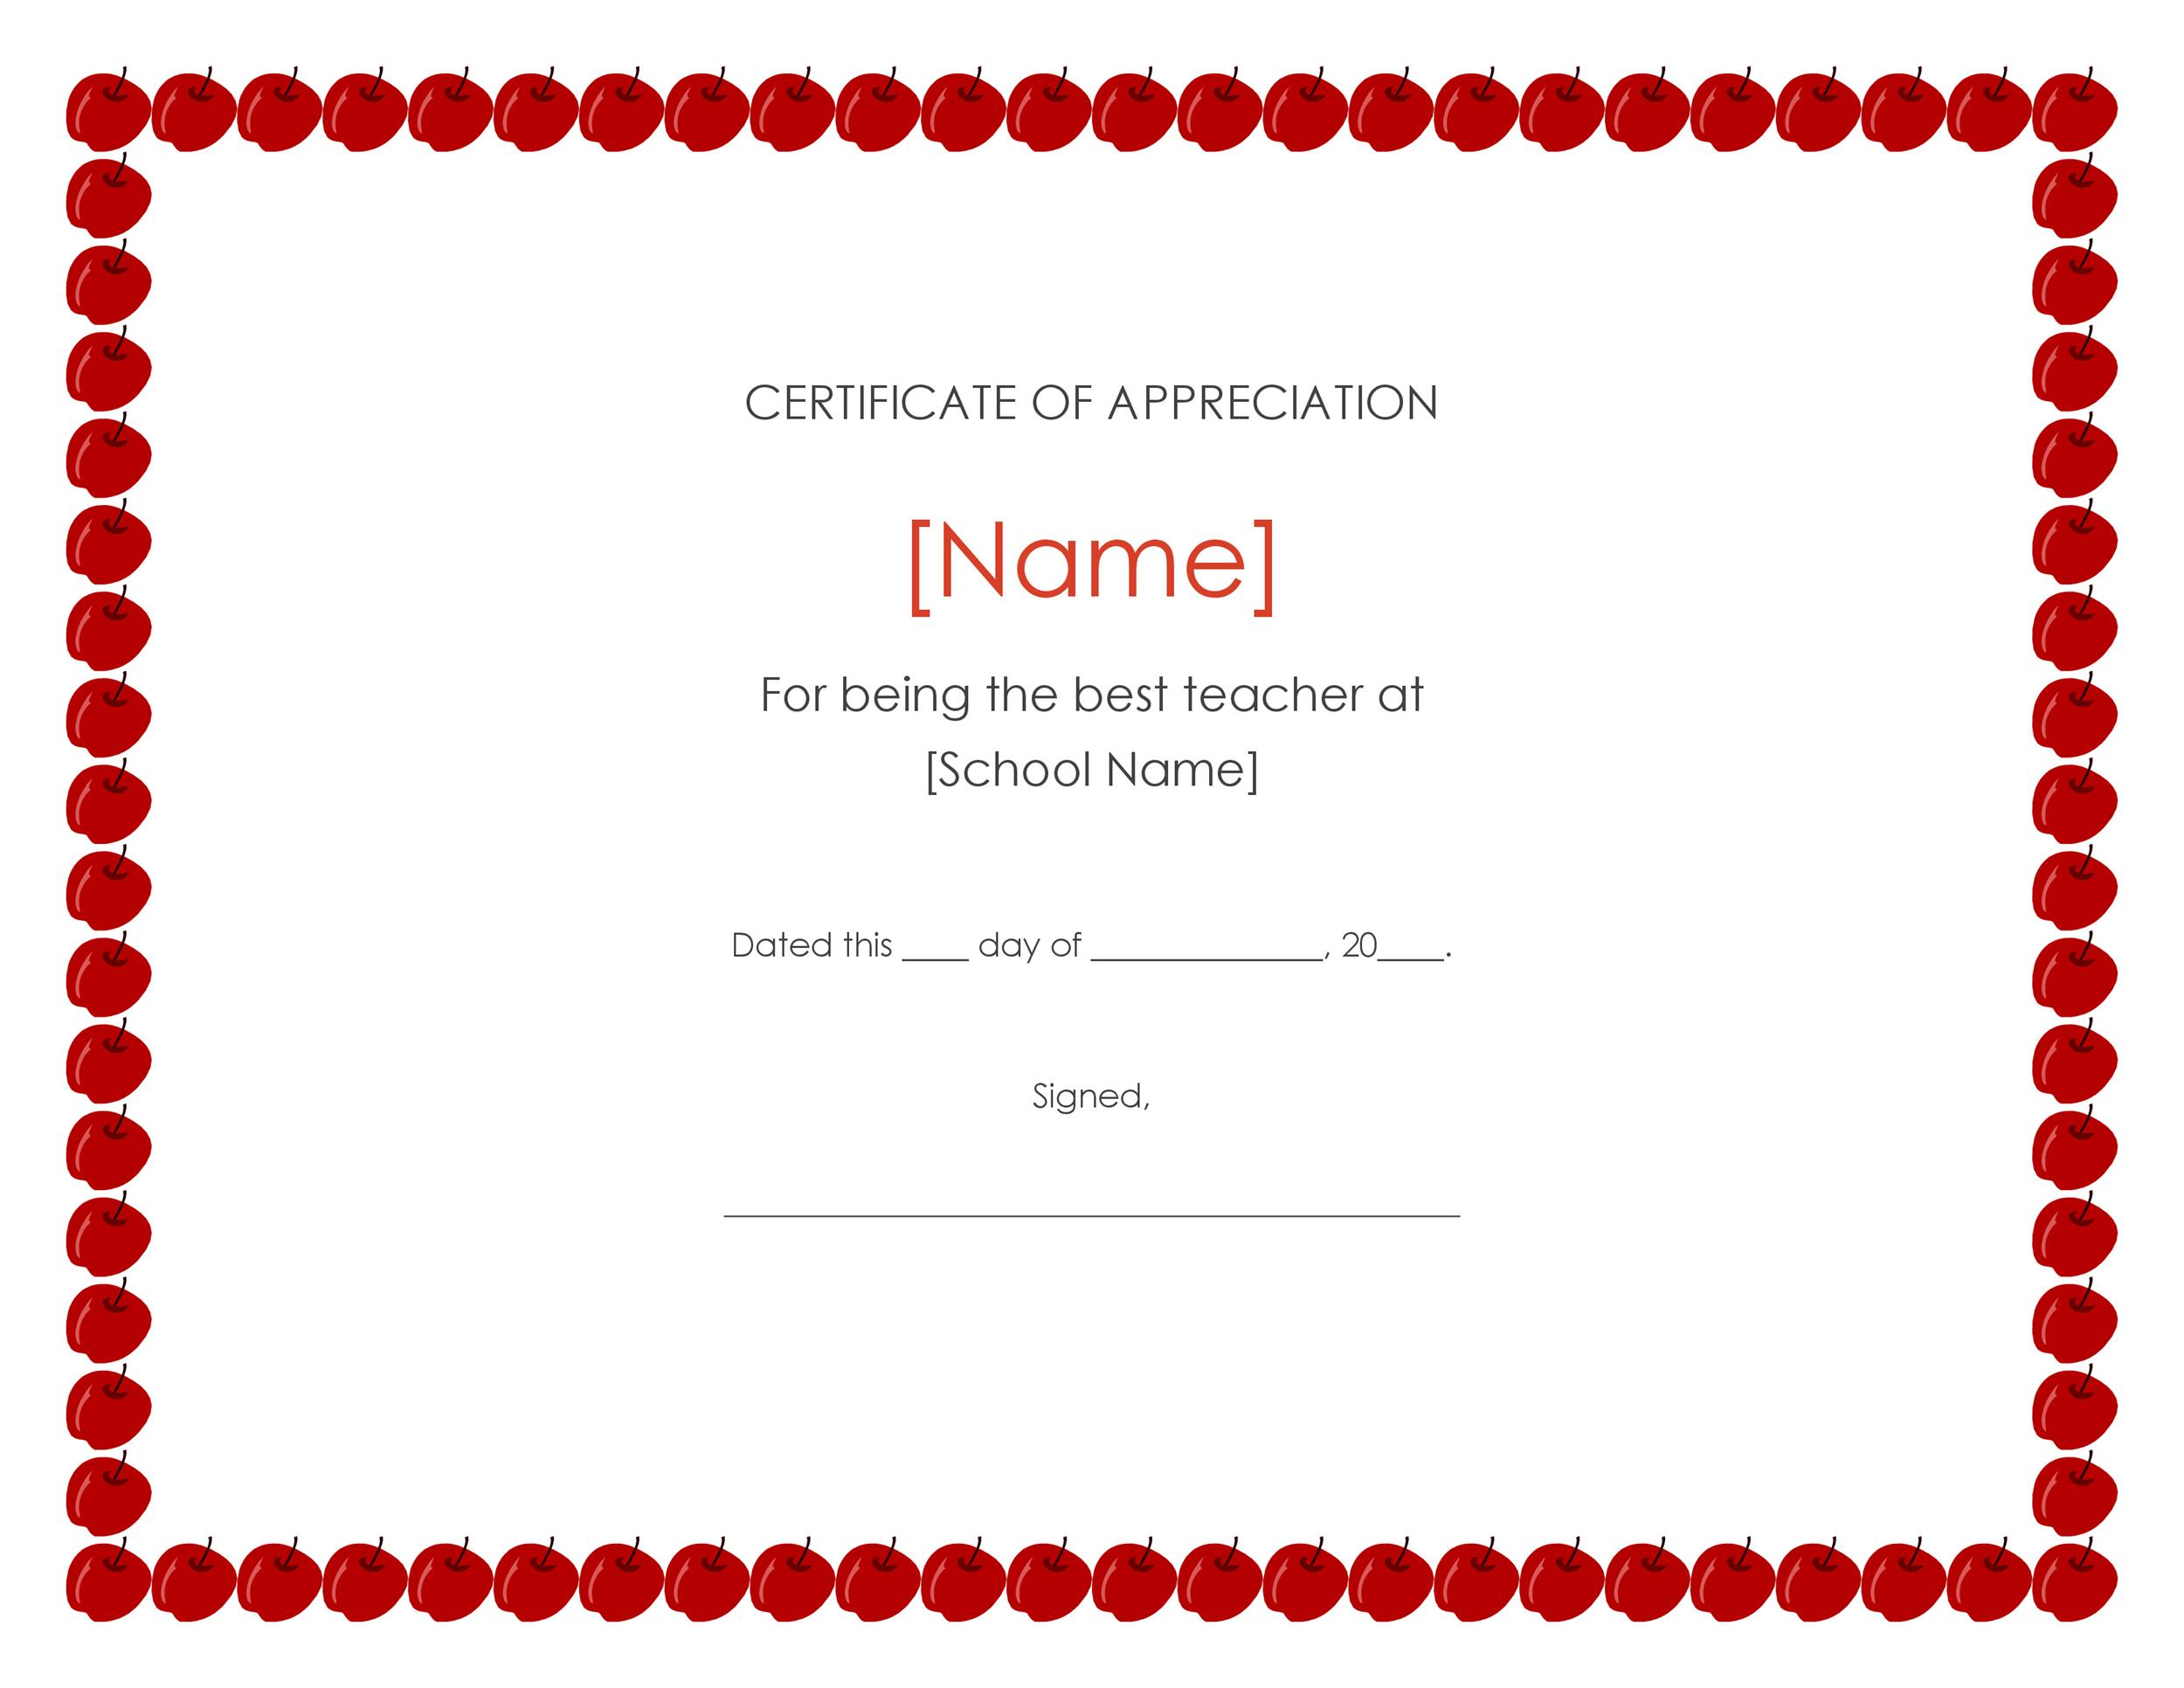 Free Certificate of Appreciation 09